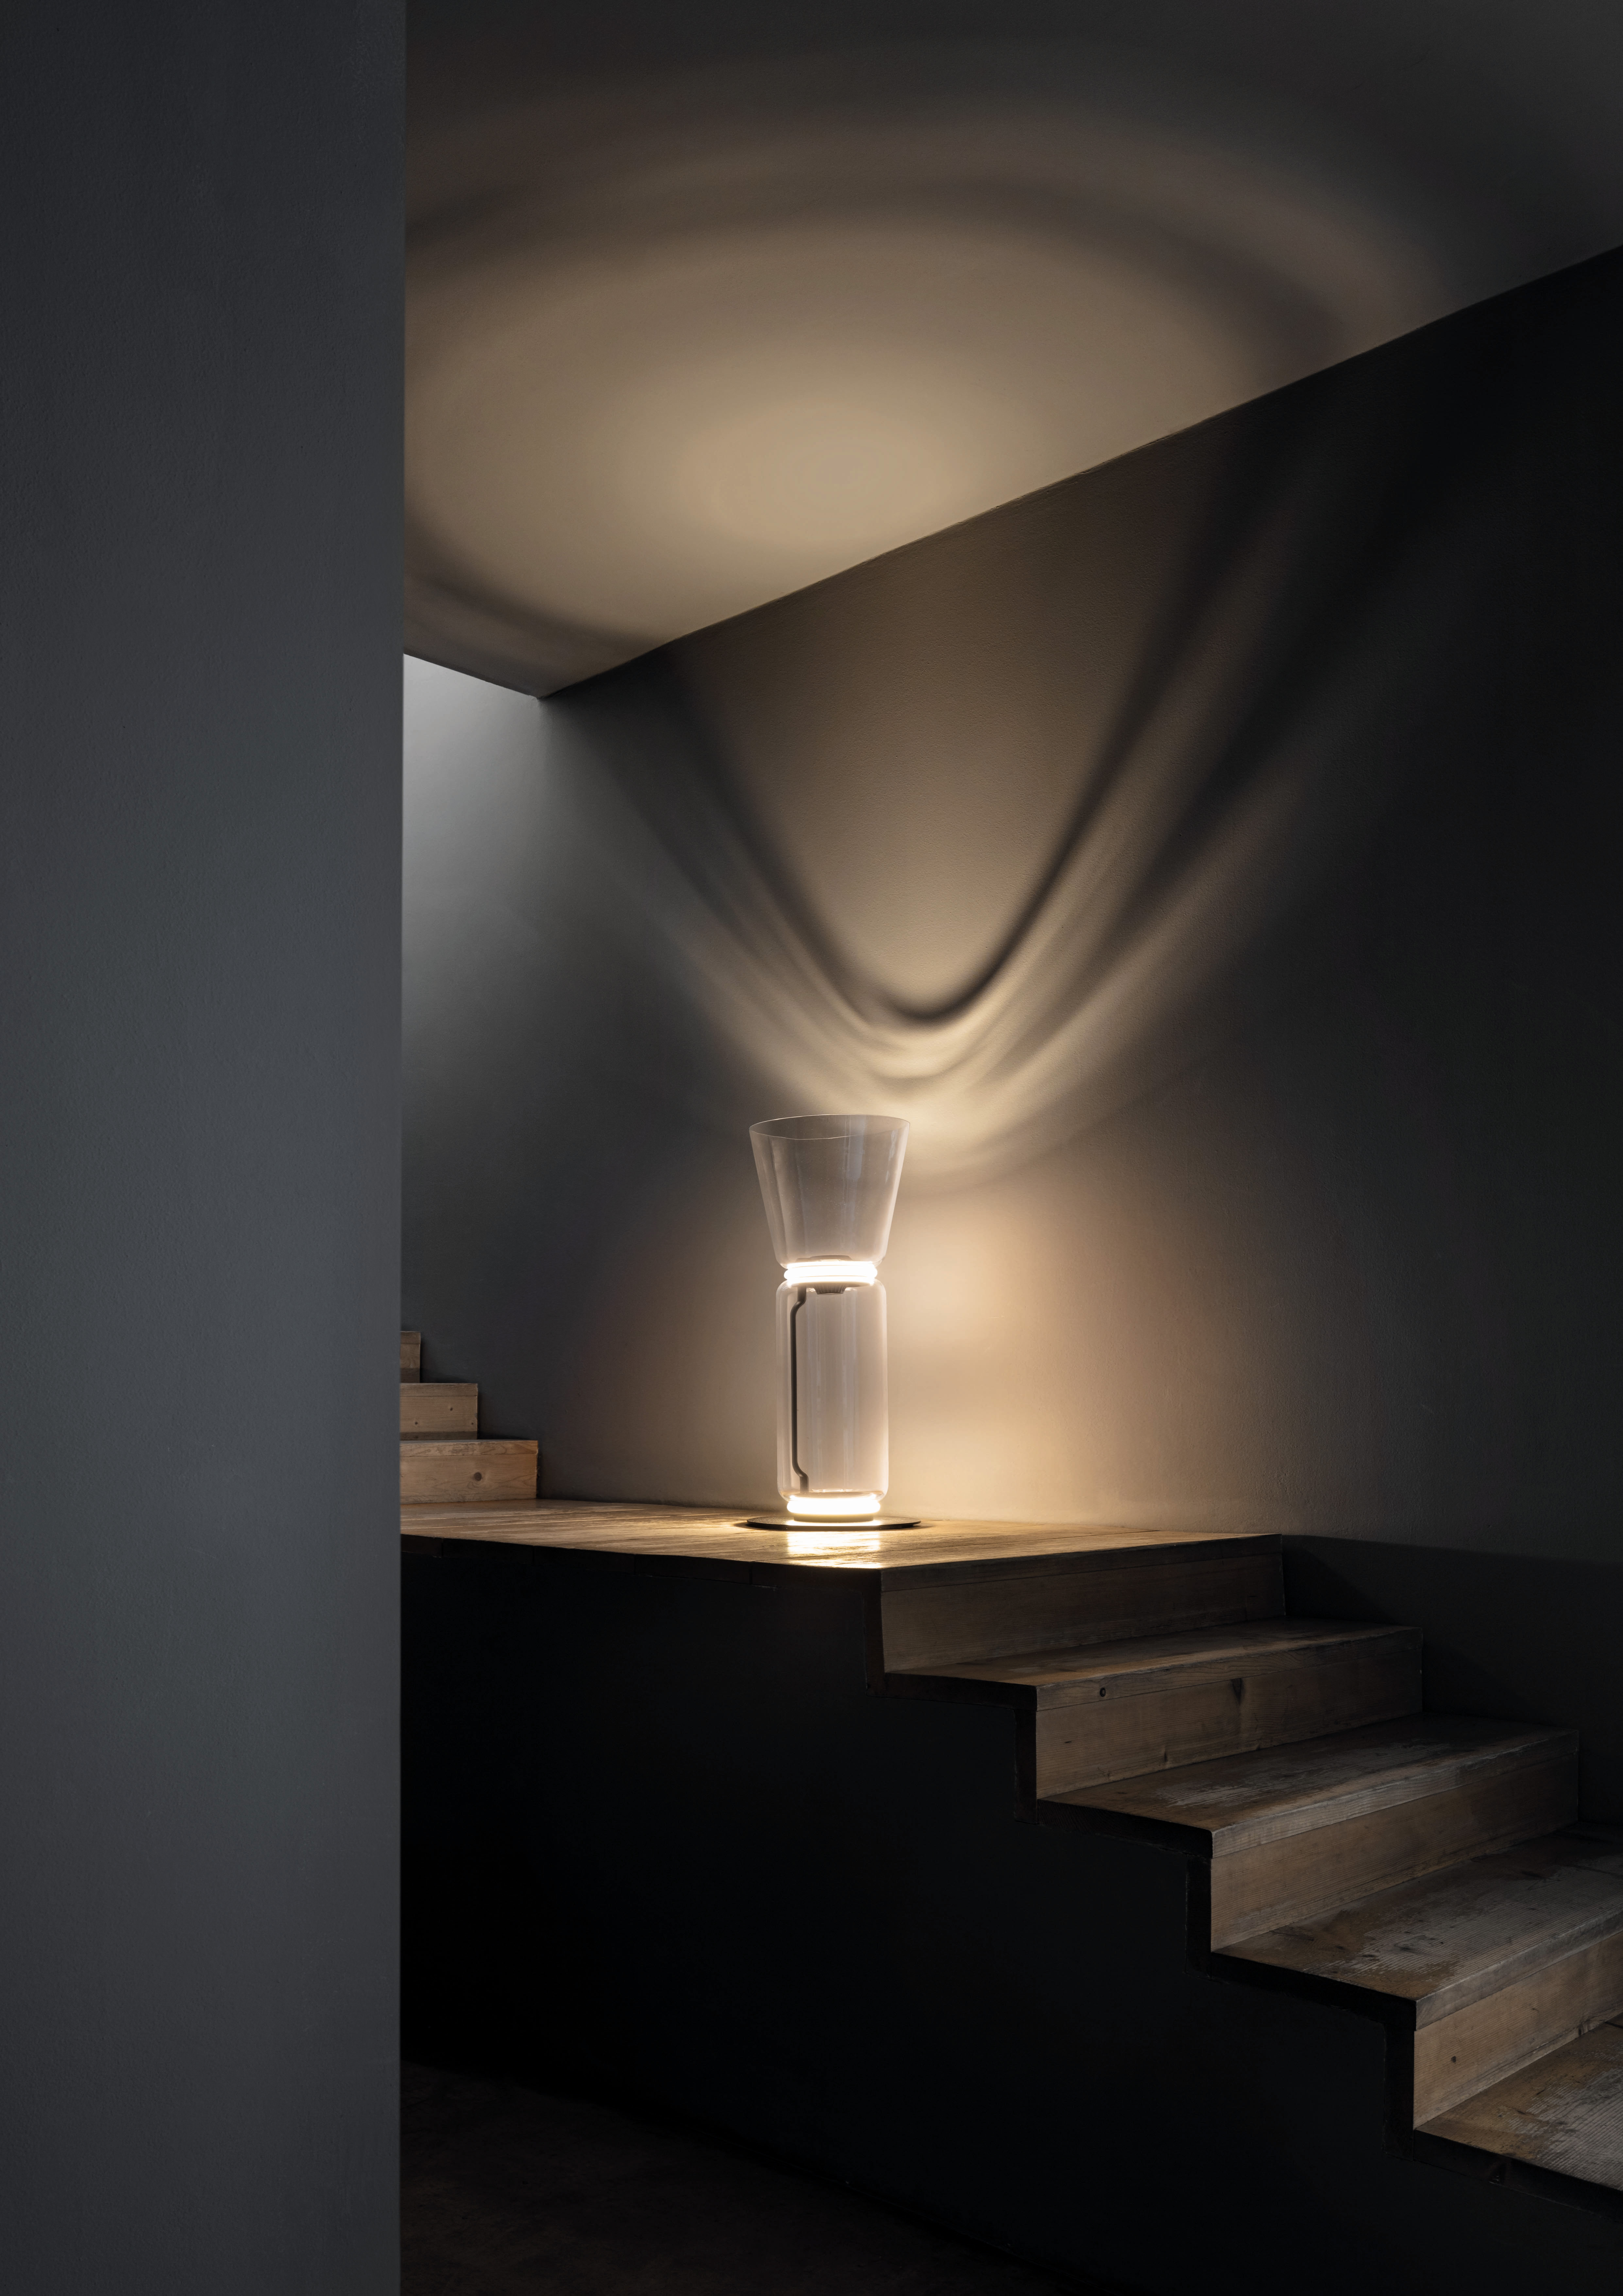 Standing lamp made of connected transparent glass cylinder and a cone| Noctambule| Konstantin Grcic| Flos| STIR